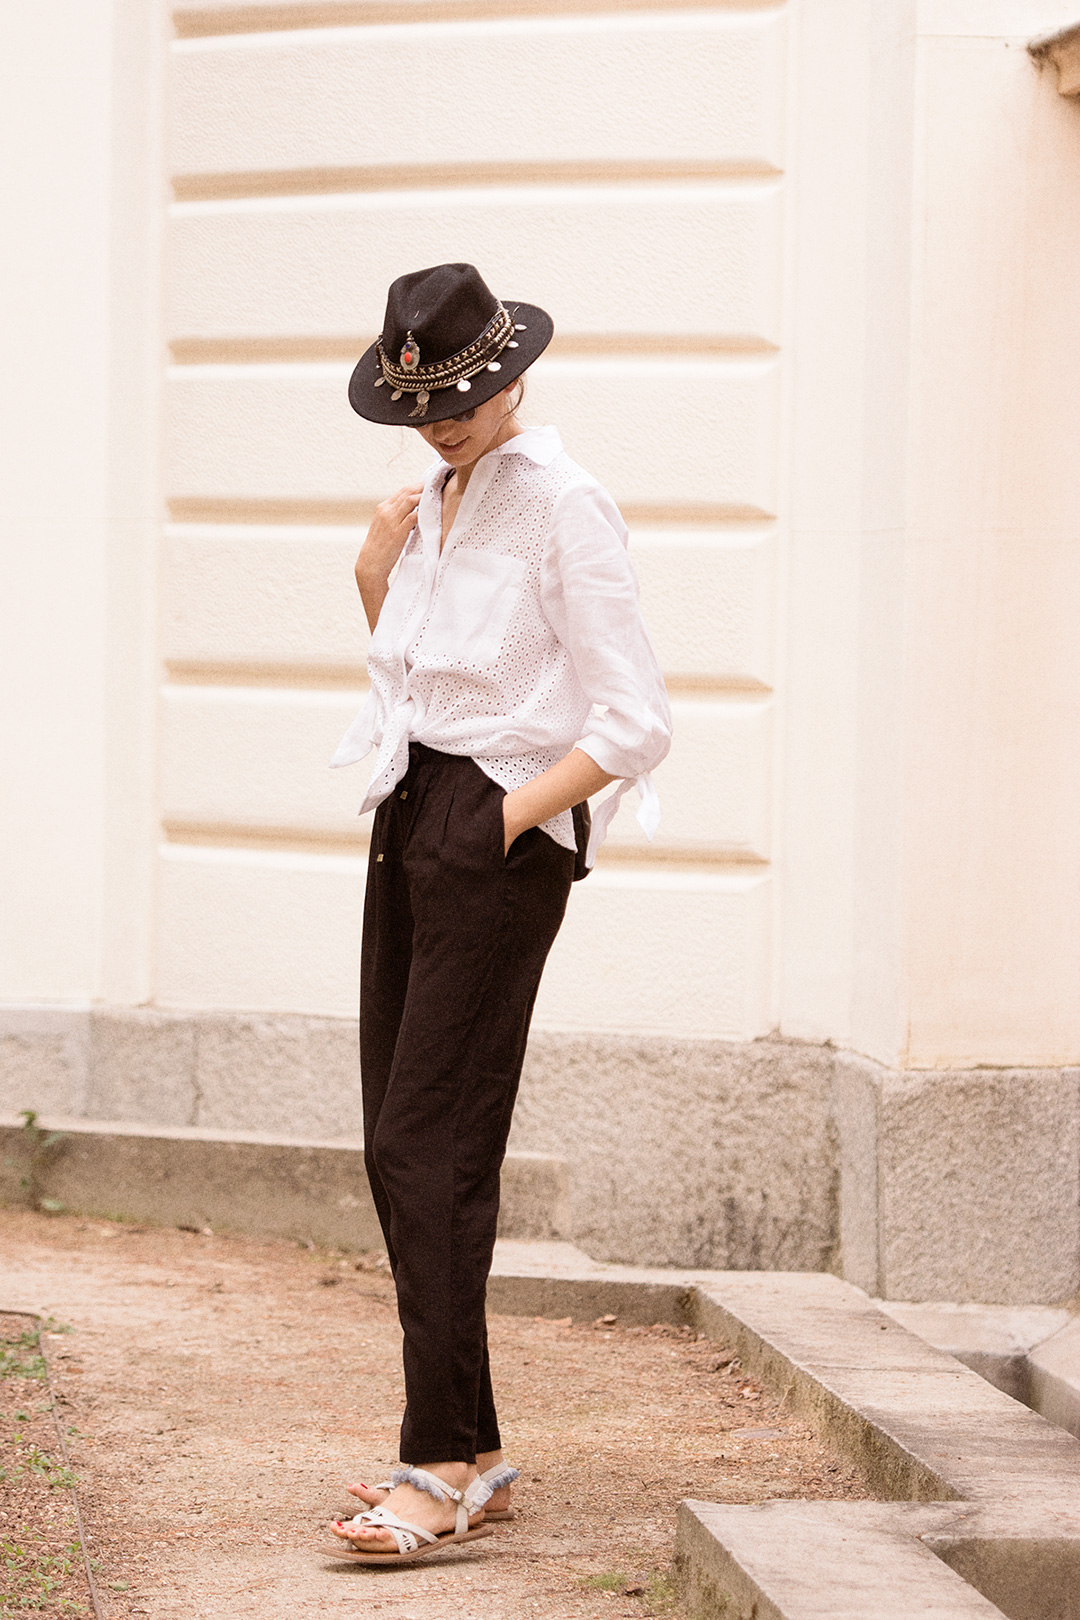 lidl-morocco-mitme-street-style-color-web-10